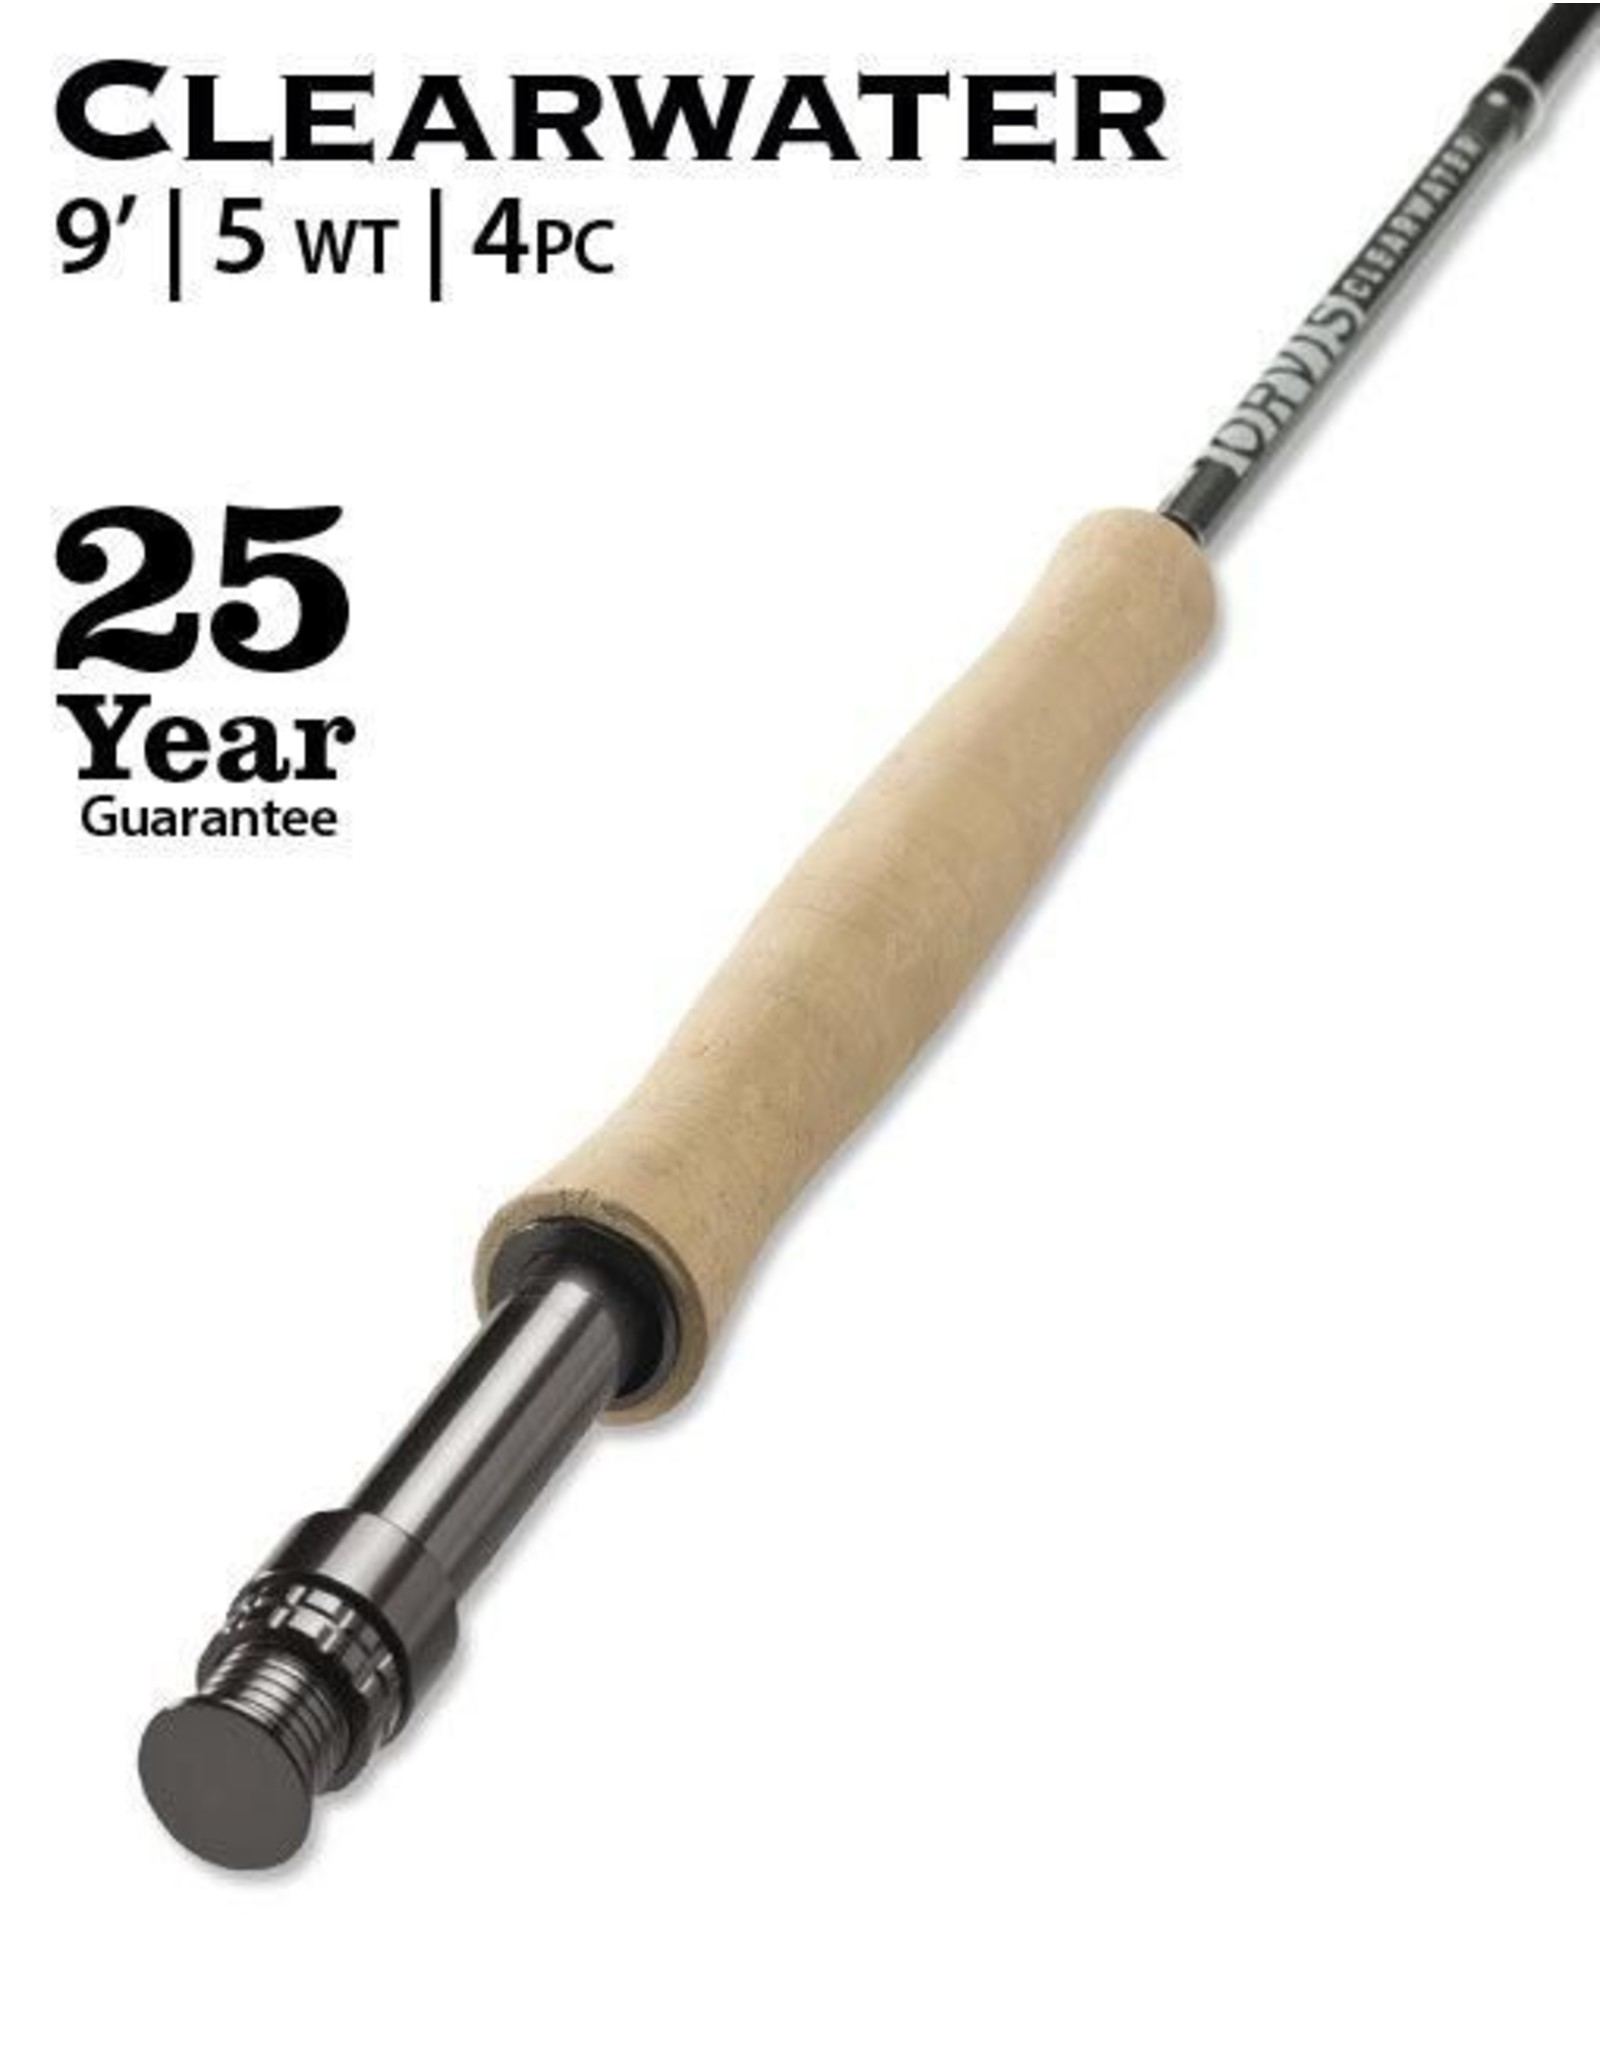 Orvis NEW Orvis Clearwater Fly Rod 9' 5wt (4pc)